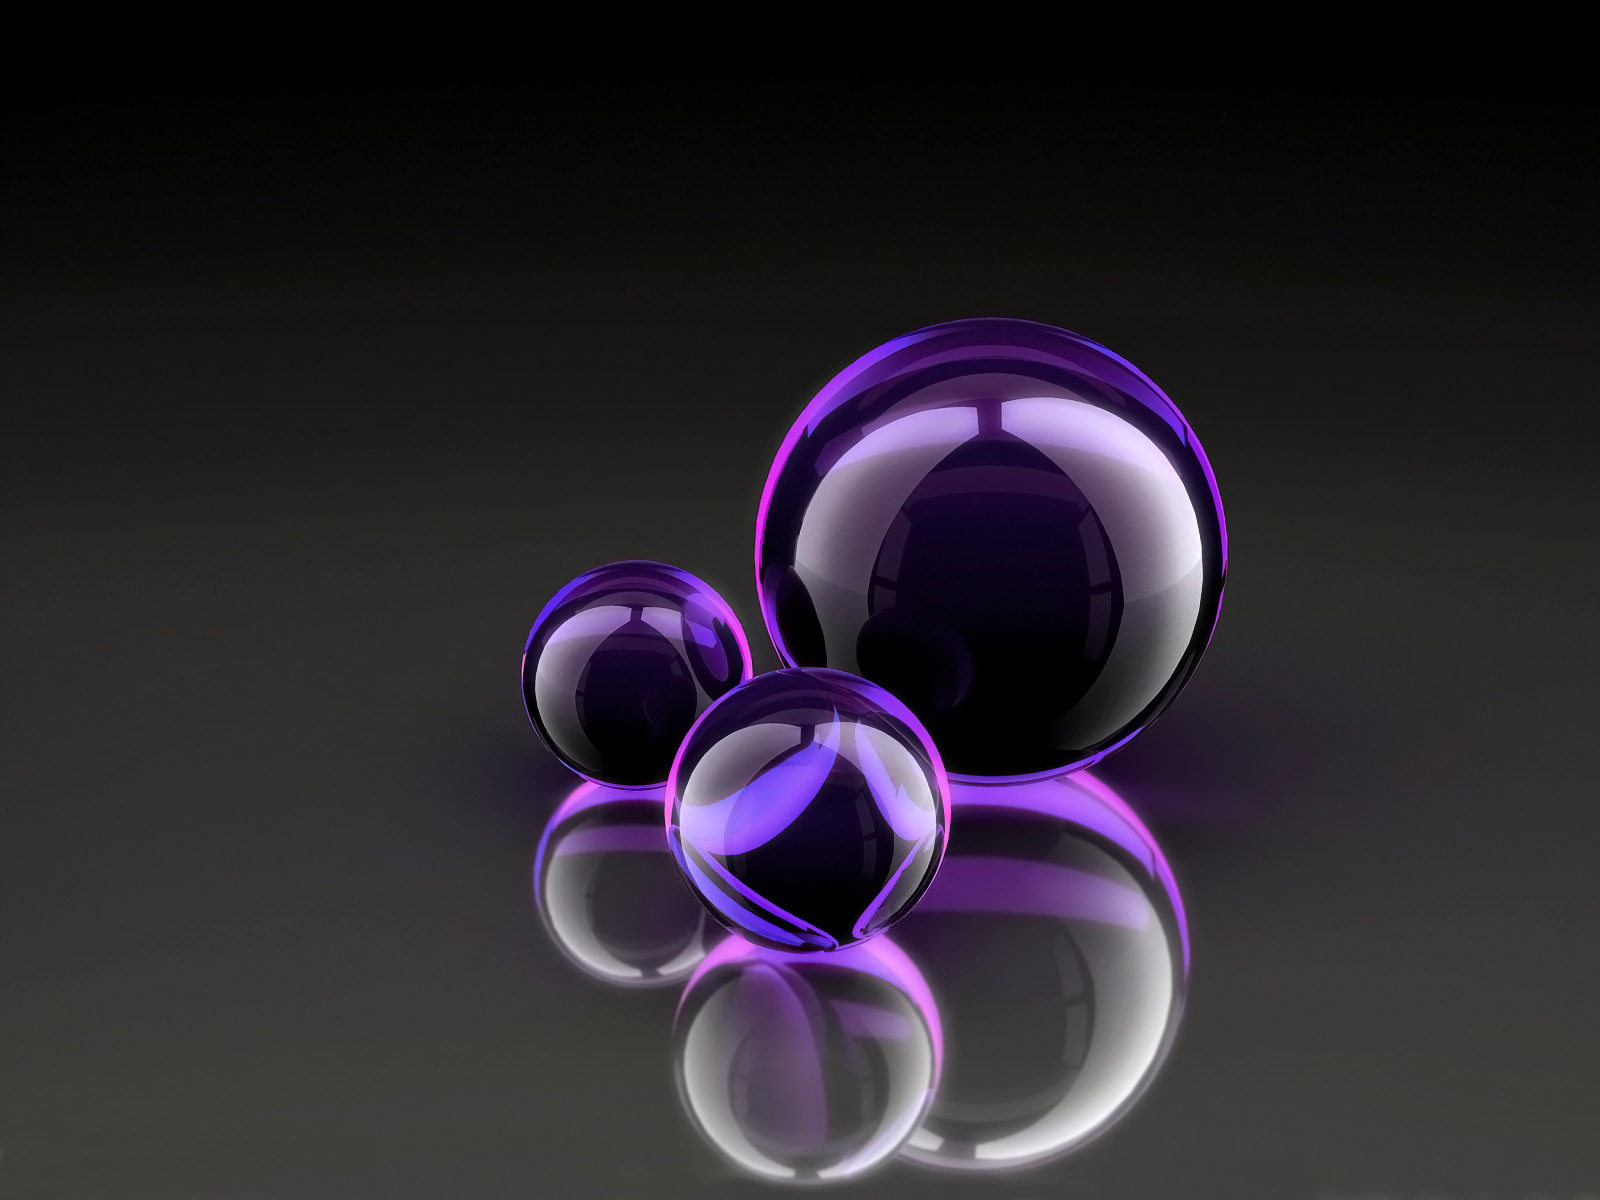 http://1.bp.blogspot.com/-MuOrrF5zAw4/TyQJMExth0I/AAAAAAAADRc/B5Zma6tW248/s1600/ball-hd-purple-wallpaper-download.jpg